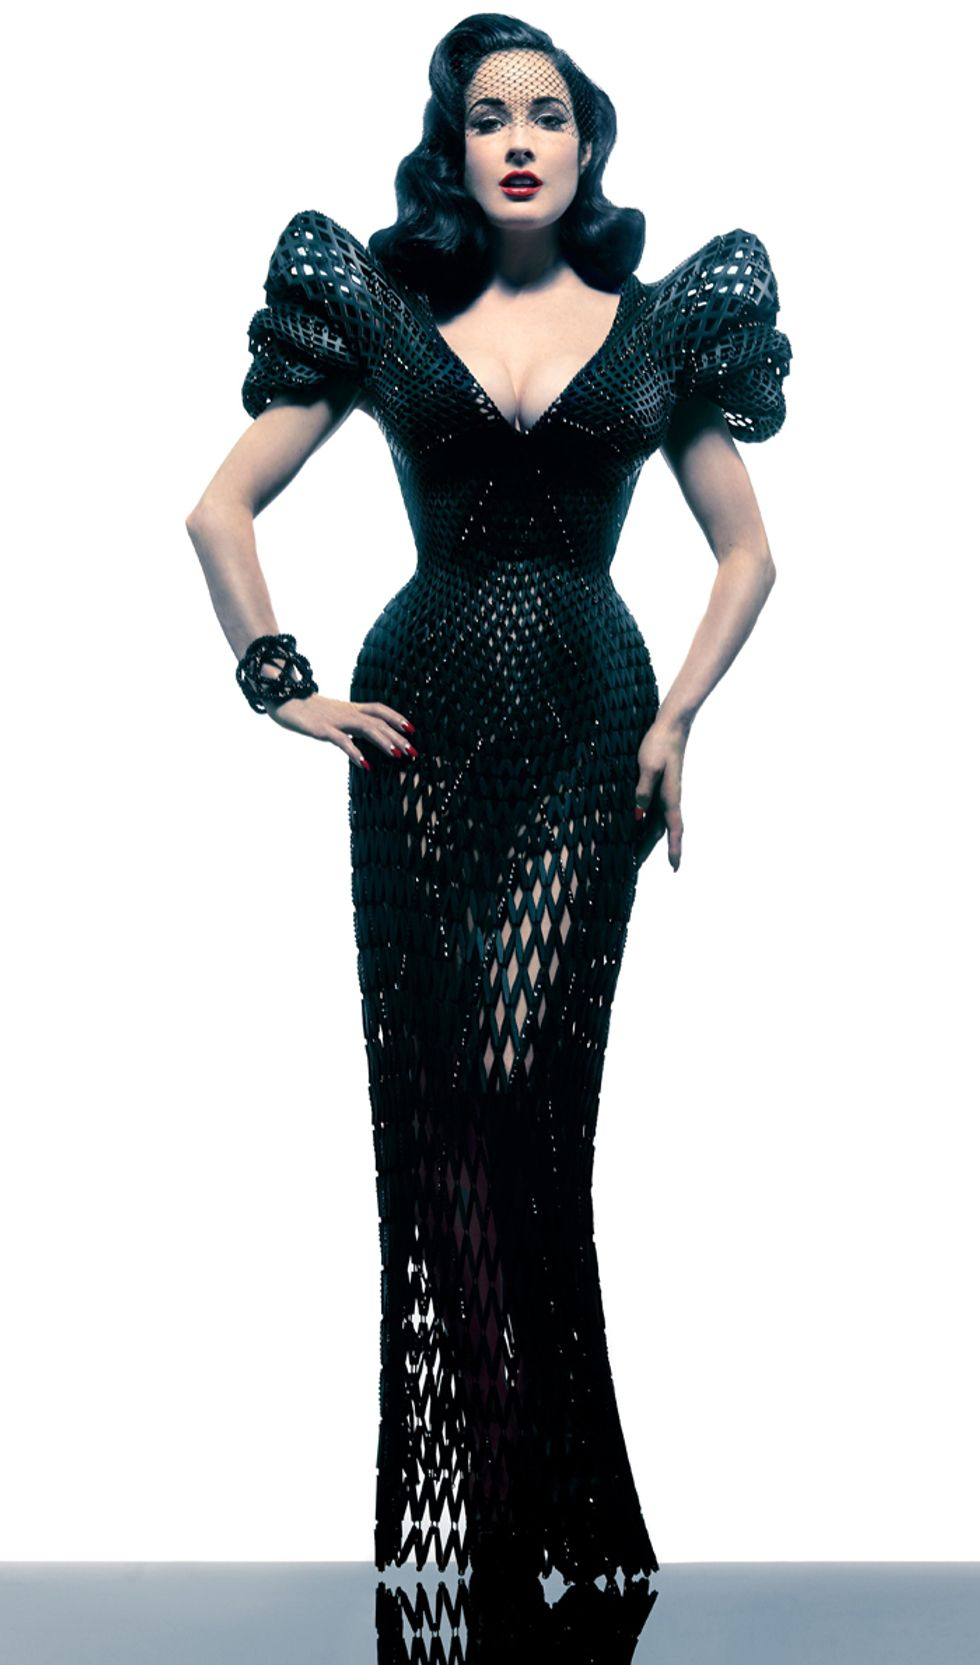 Behold: The First Totally 3D-Printed Dress